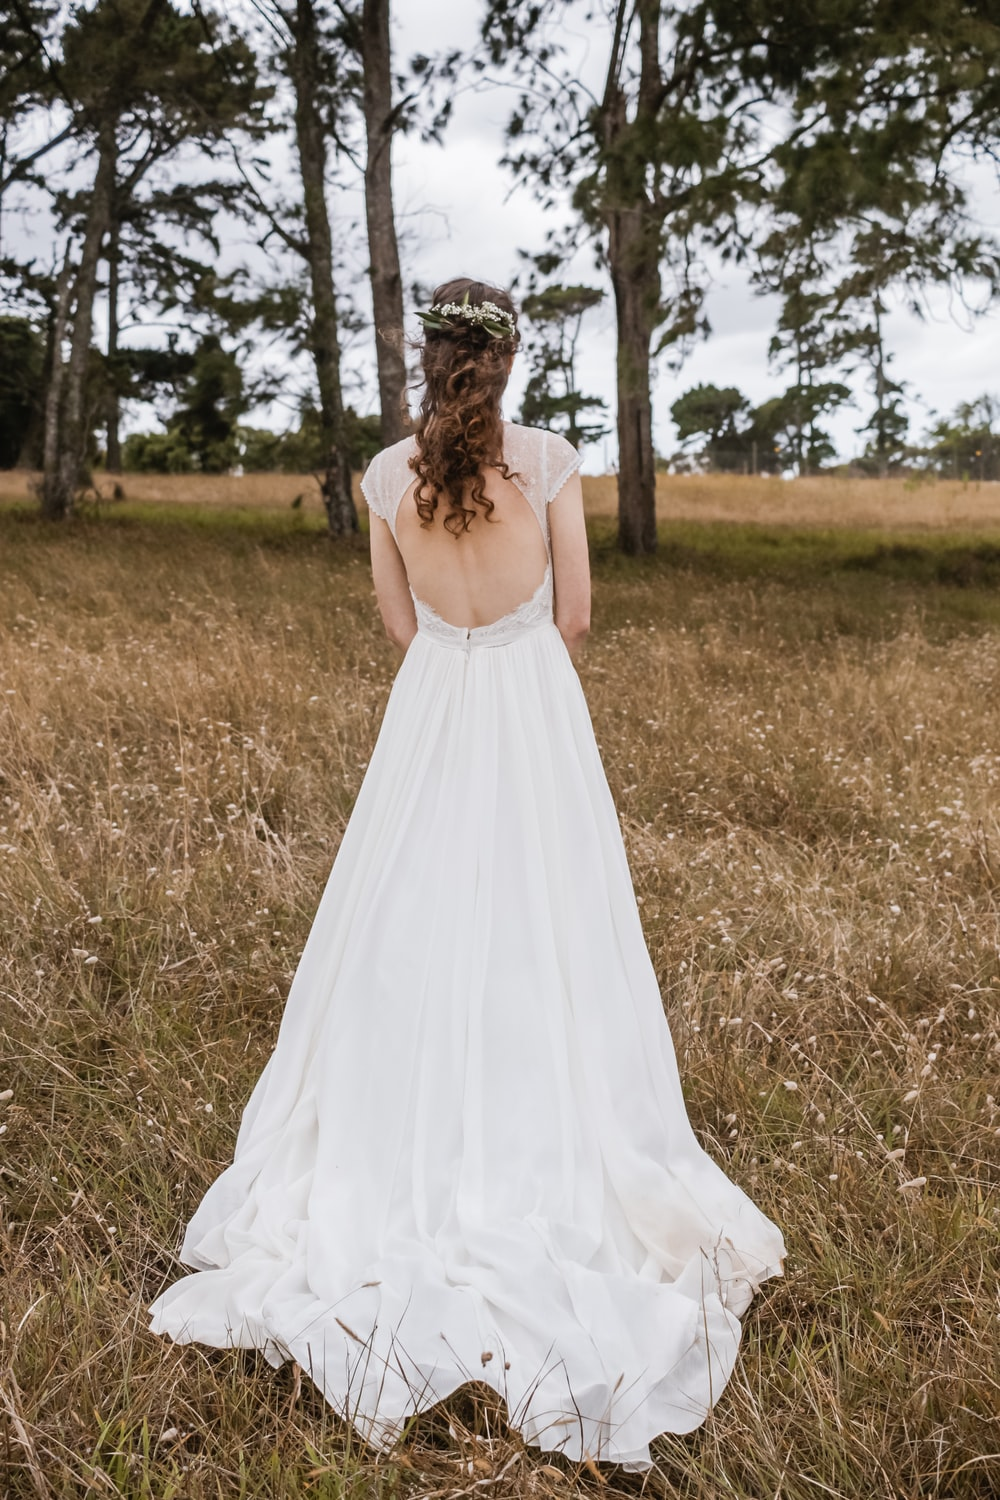 woman wearing backless wedding gown standing in the middle of brown grass field